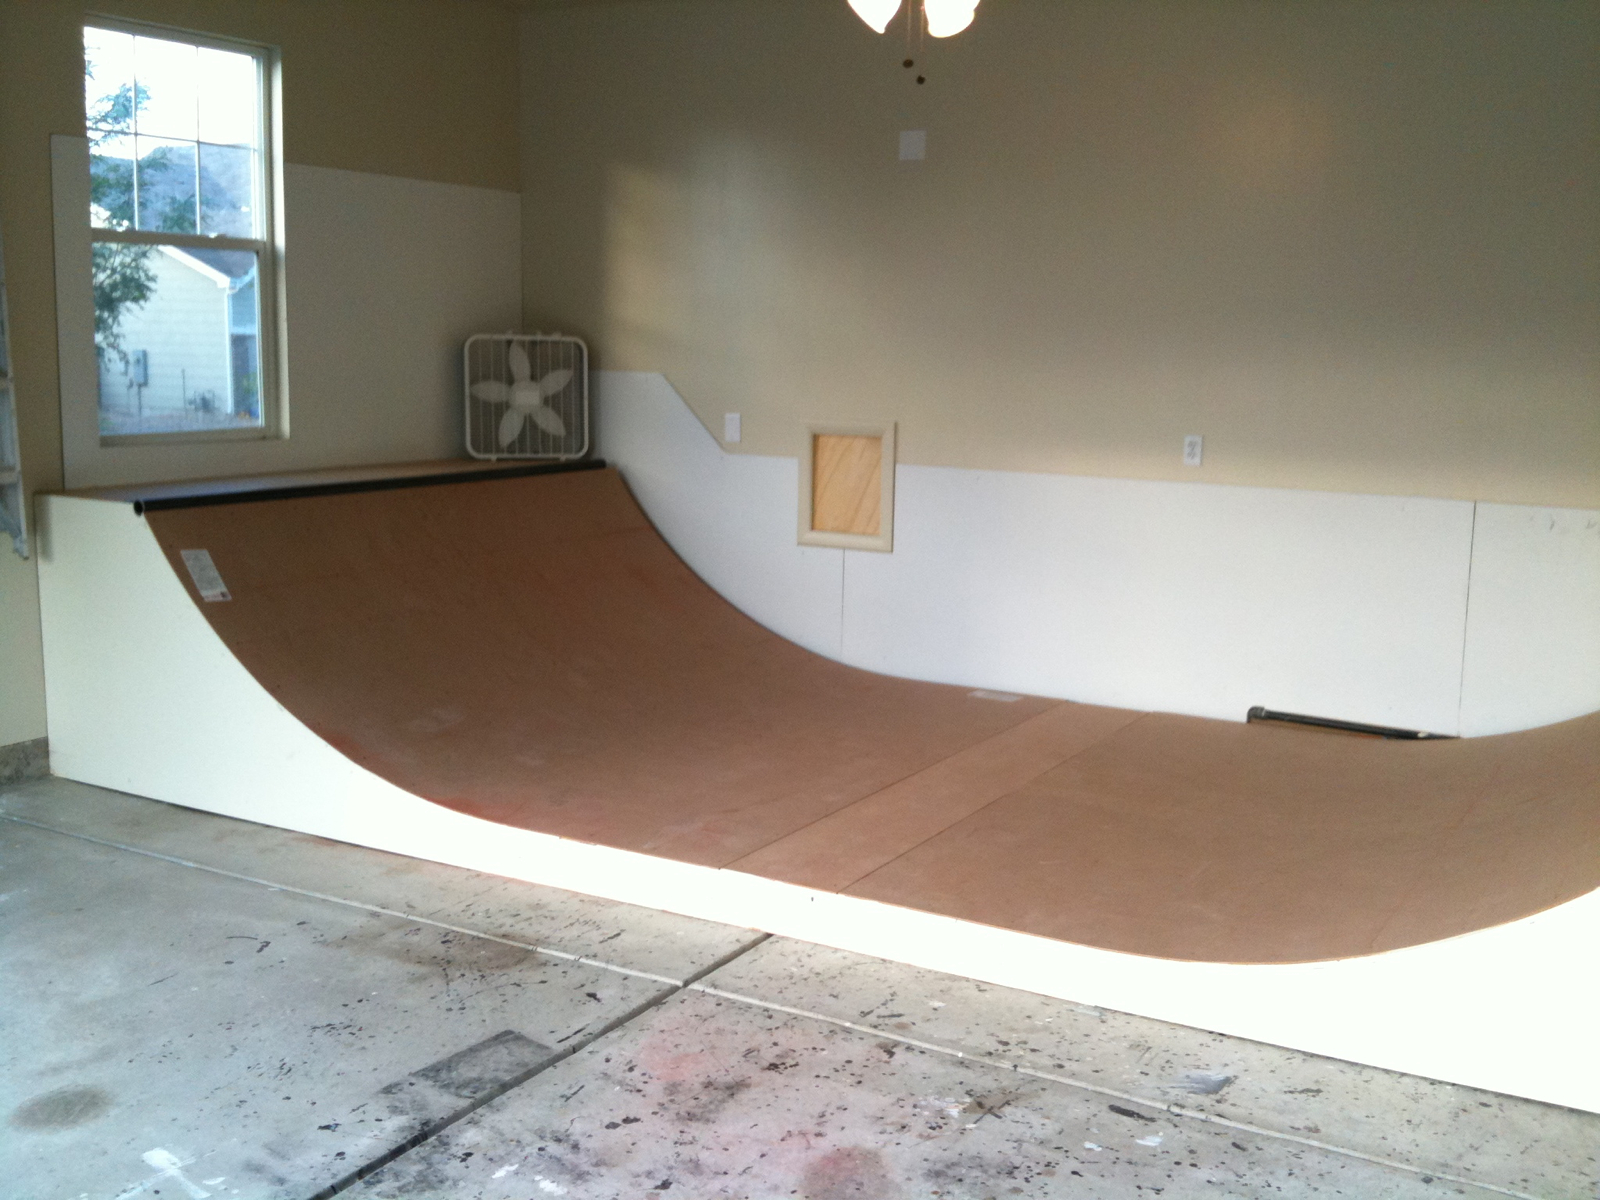 how to build a mini ramp for skateboarding